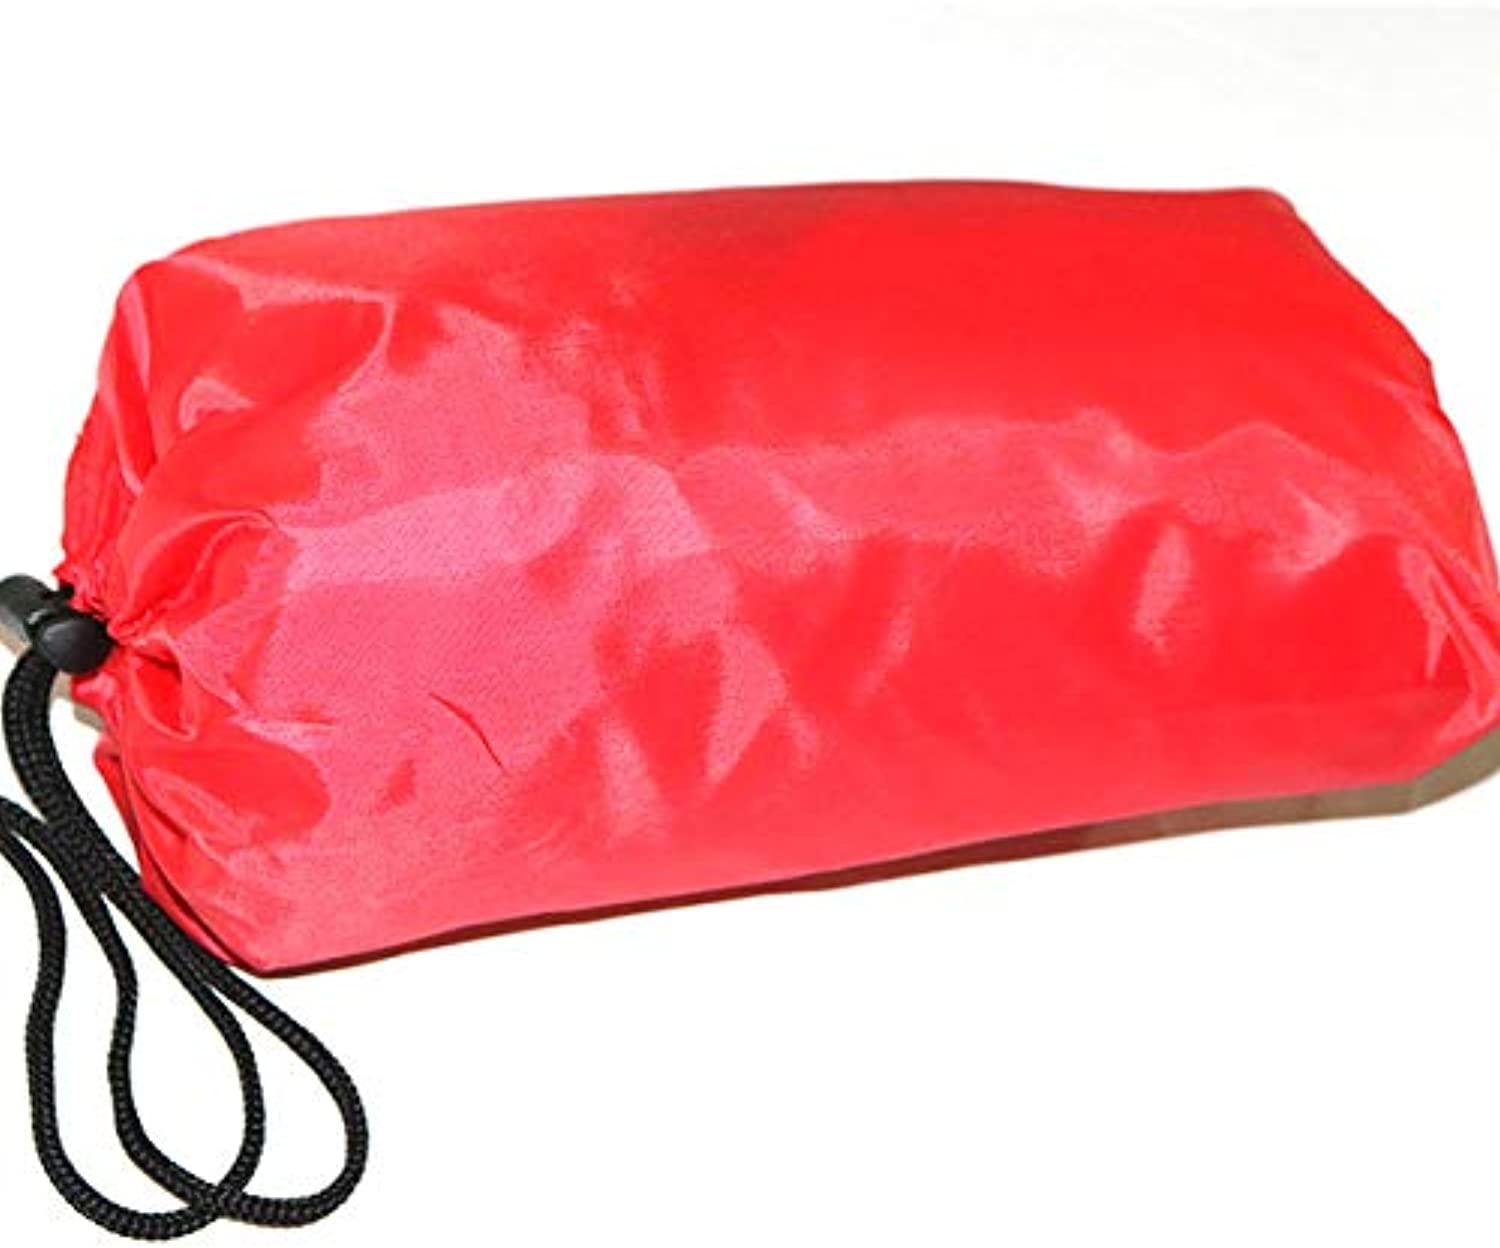 Strength Training Football Training Tools Parachute Umbrellas Super Soccer Resistance Umbrella Exercise Increase Speed Equipment   Red